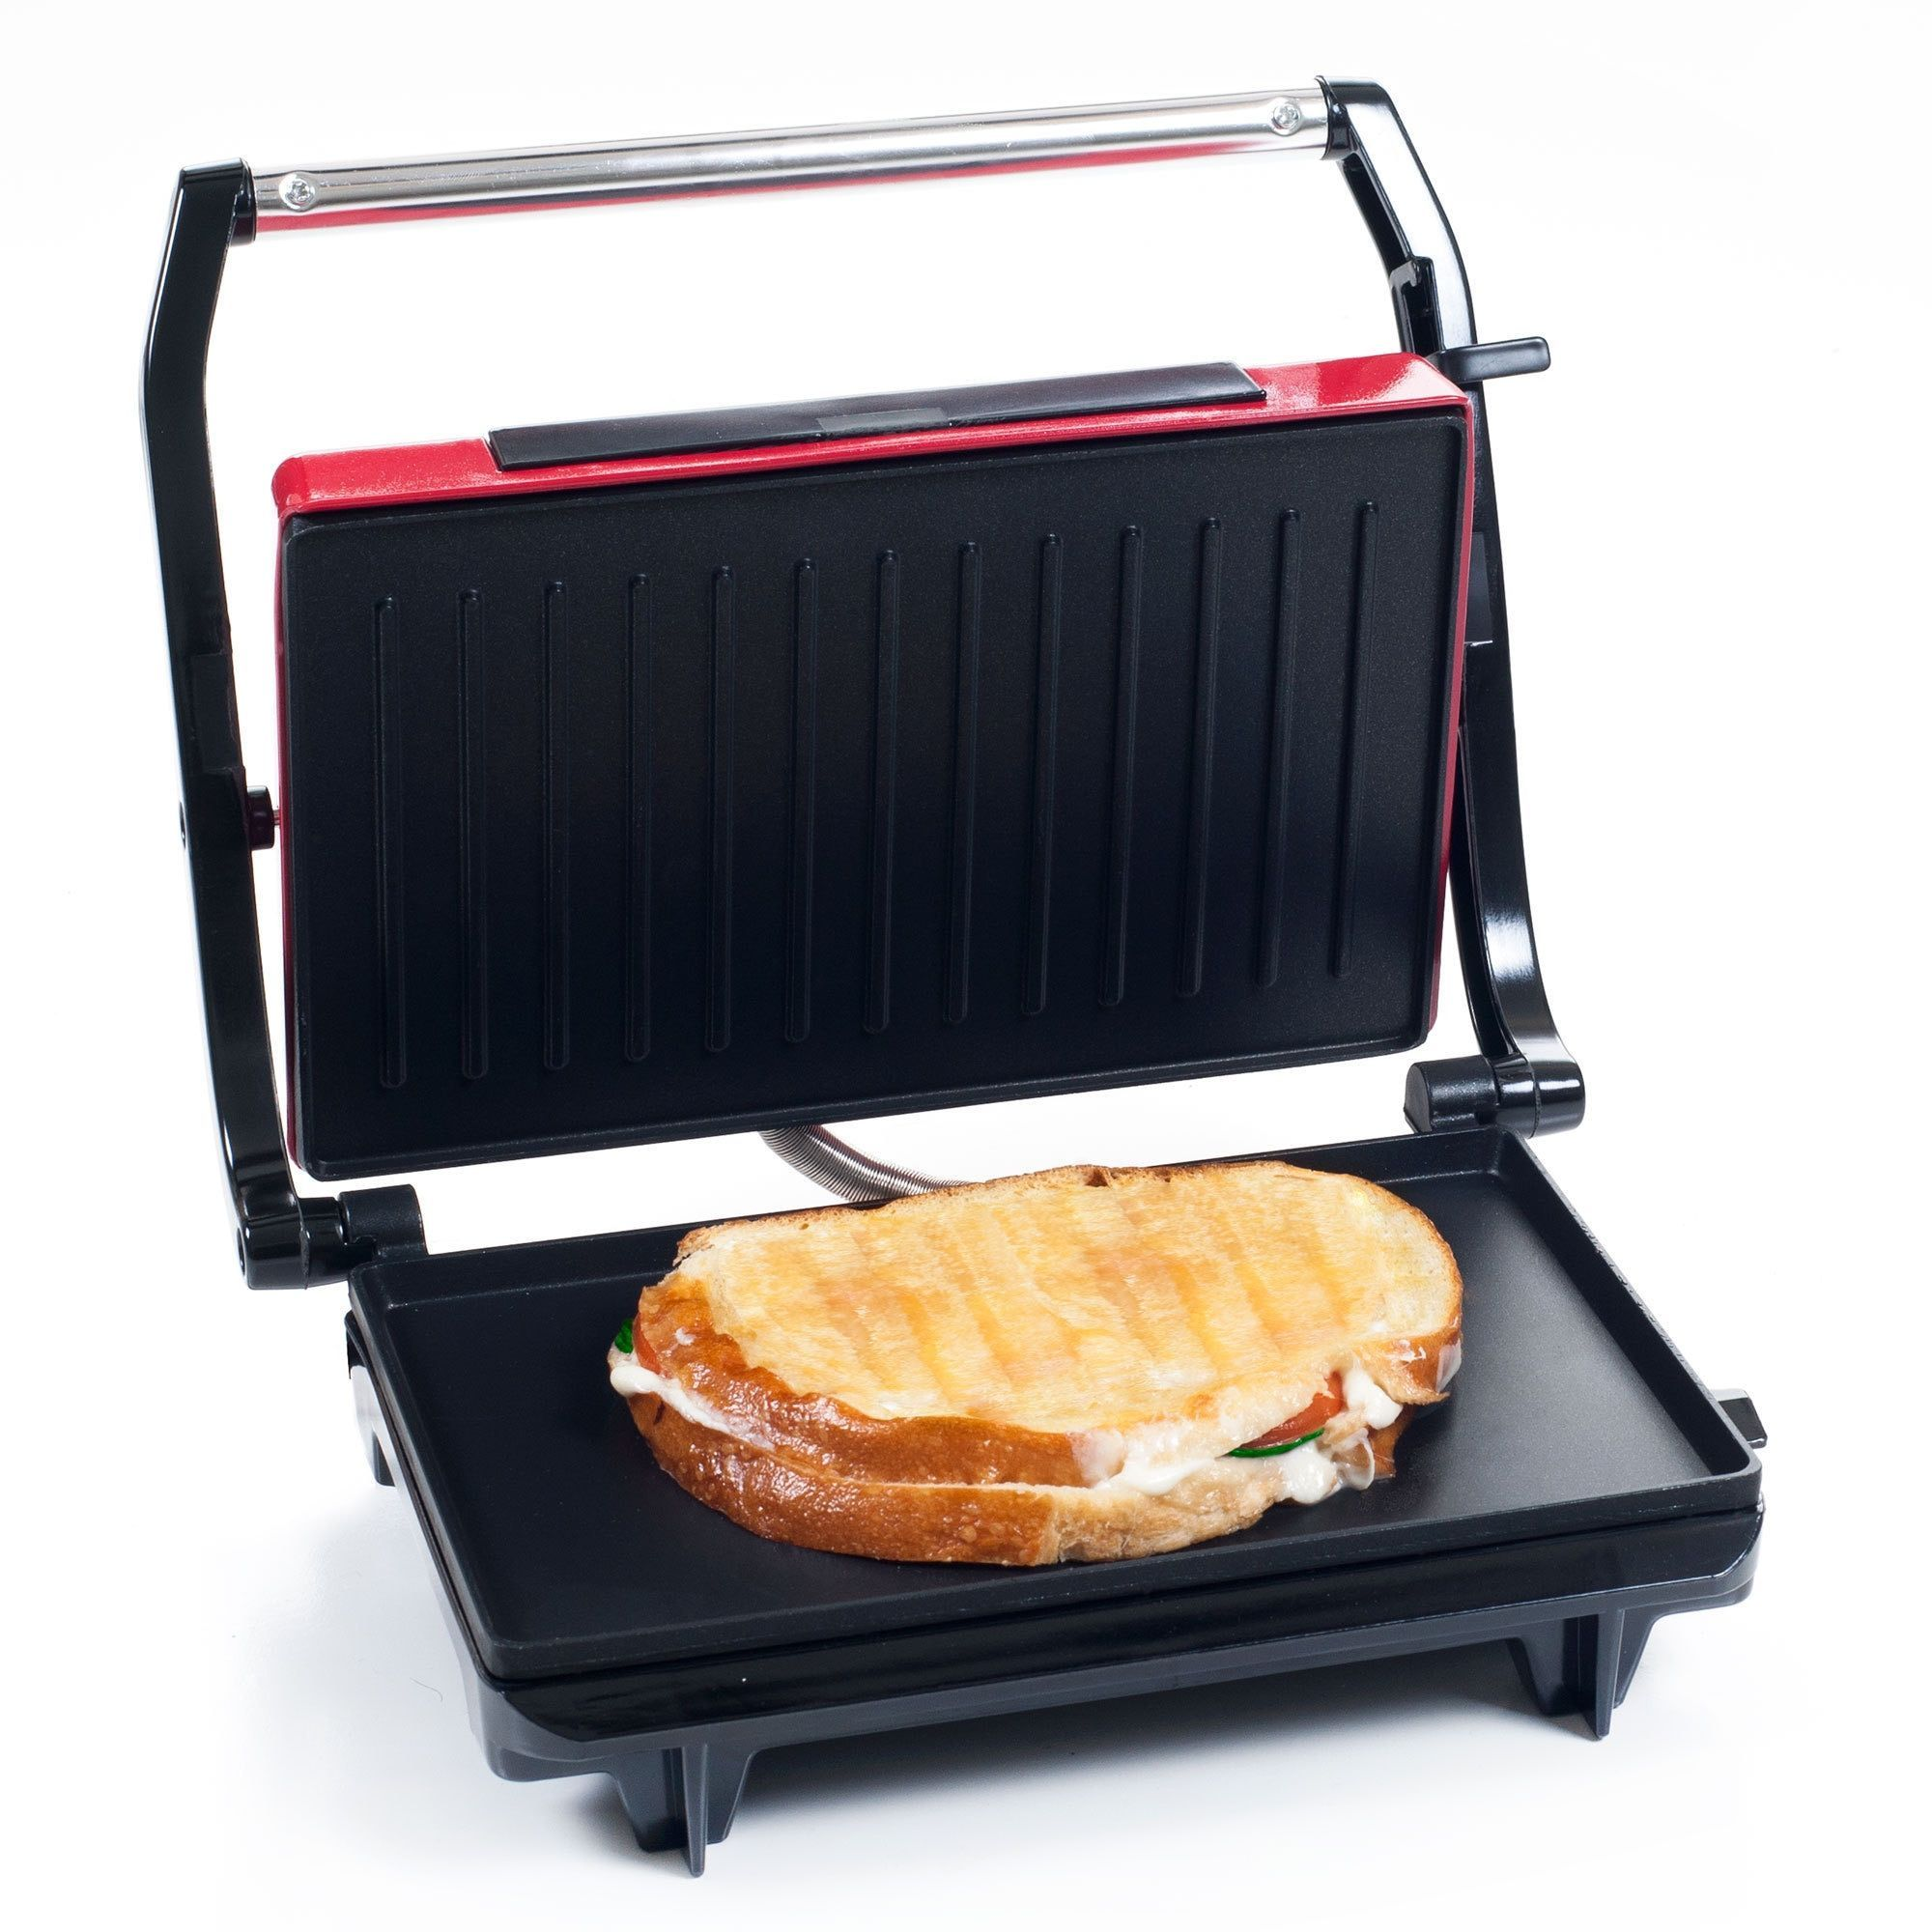 Grille Panini Panini Press Indoor Grill And Gourmet Sandwich Maker With Nonstick